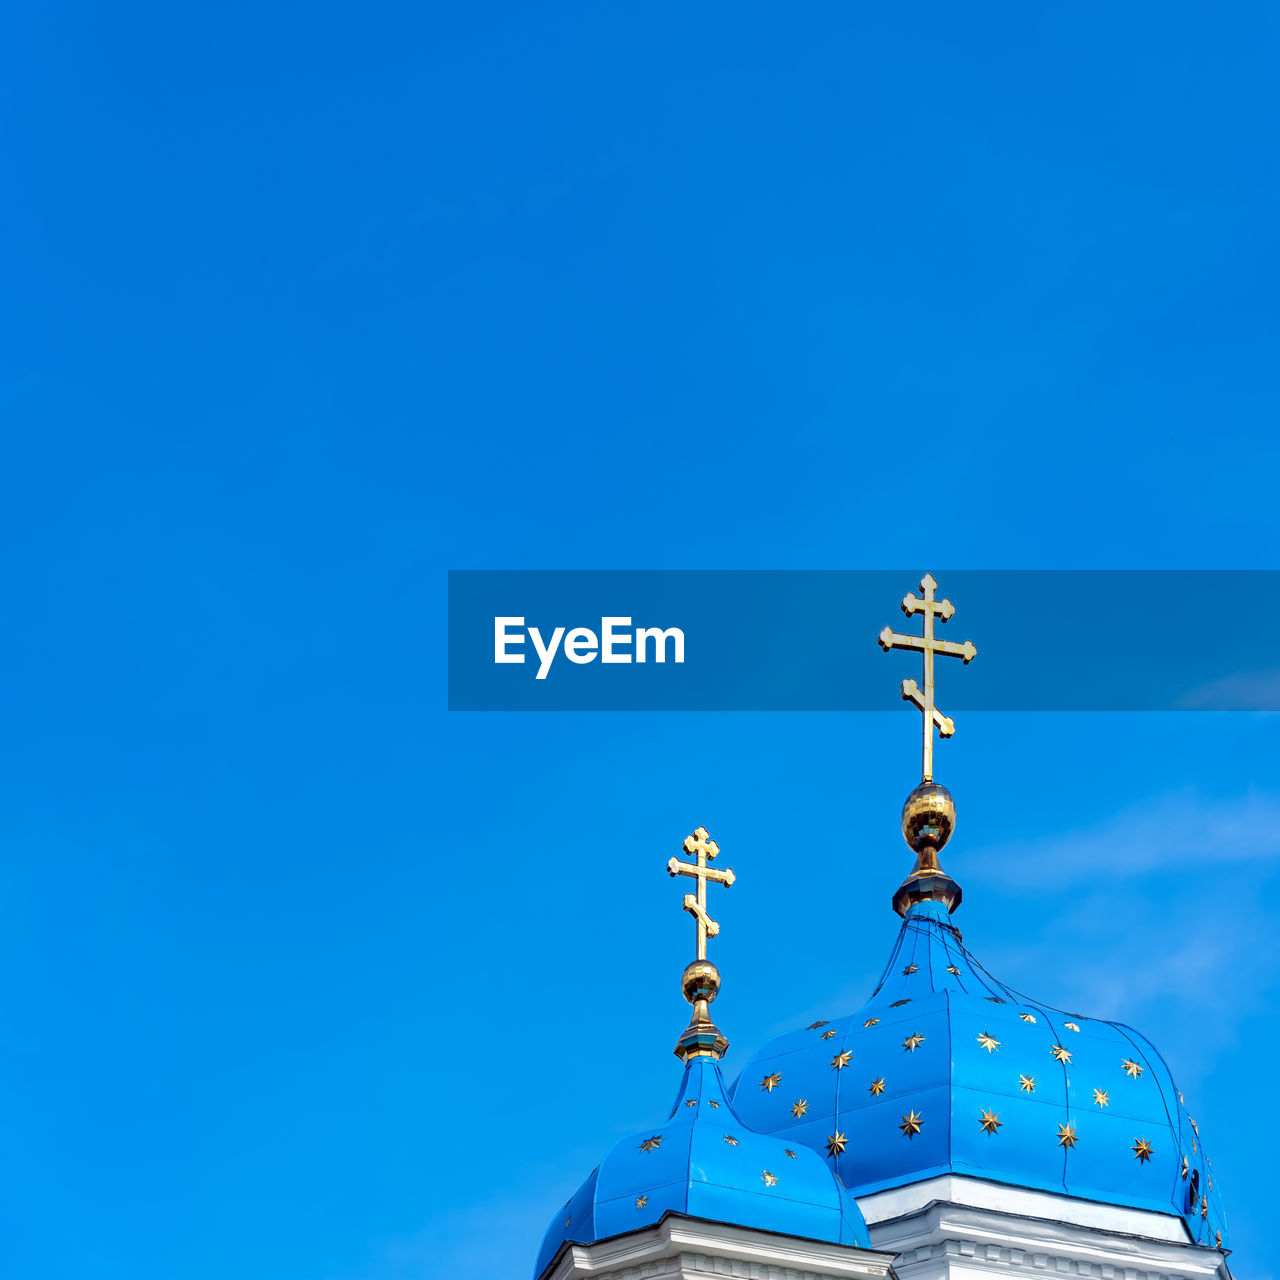 blue, sky, low angle view, copy space, no people, nature, clear sky, belief, place of worship, religion, day, weather vane, built structure, architecture, spirituality, communication, building exterior, high section, building, outdoors, spire